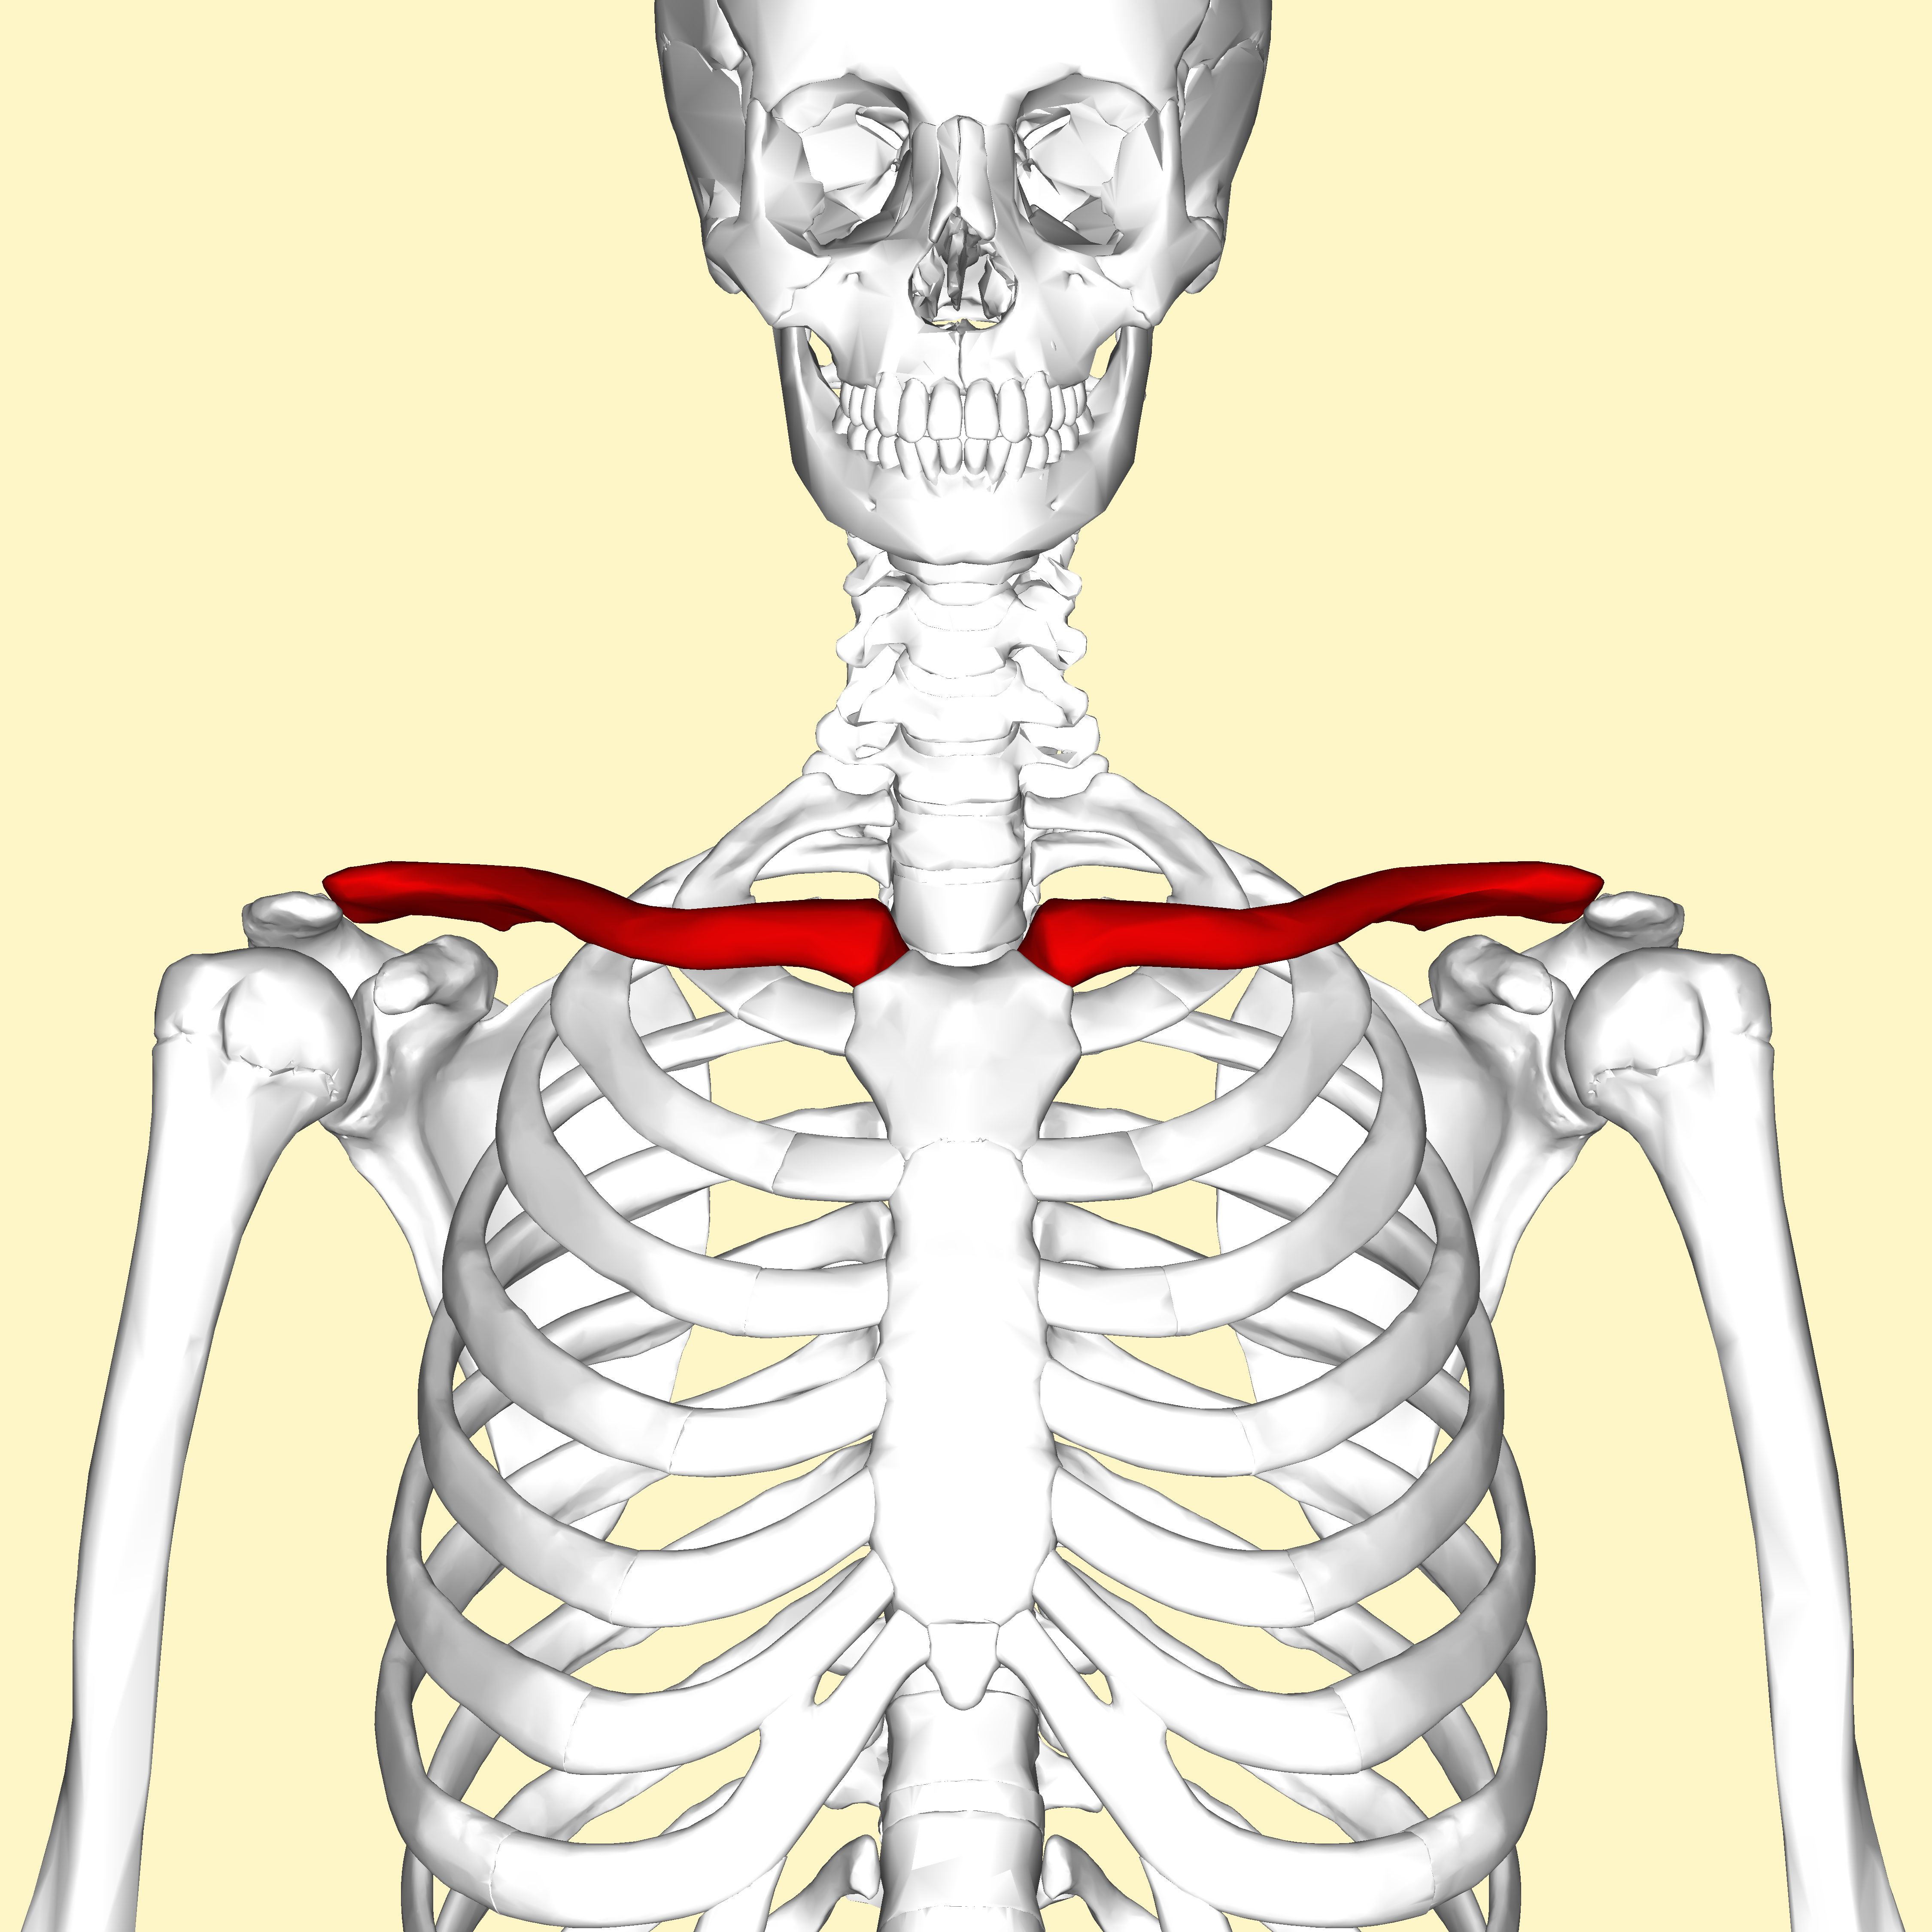 Chest Anatomical Training Guide | GuideScroll